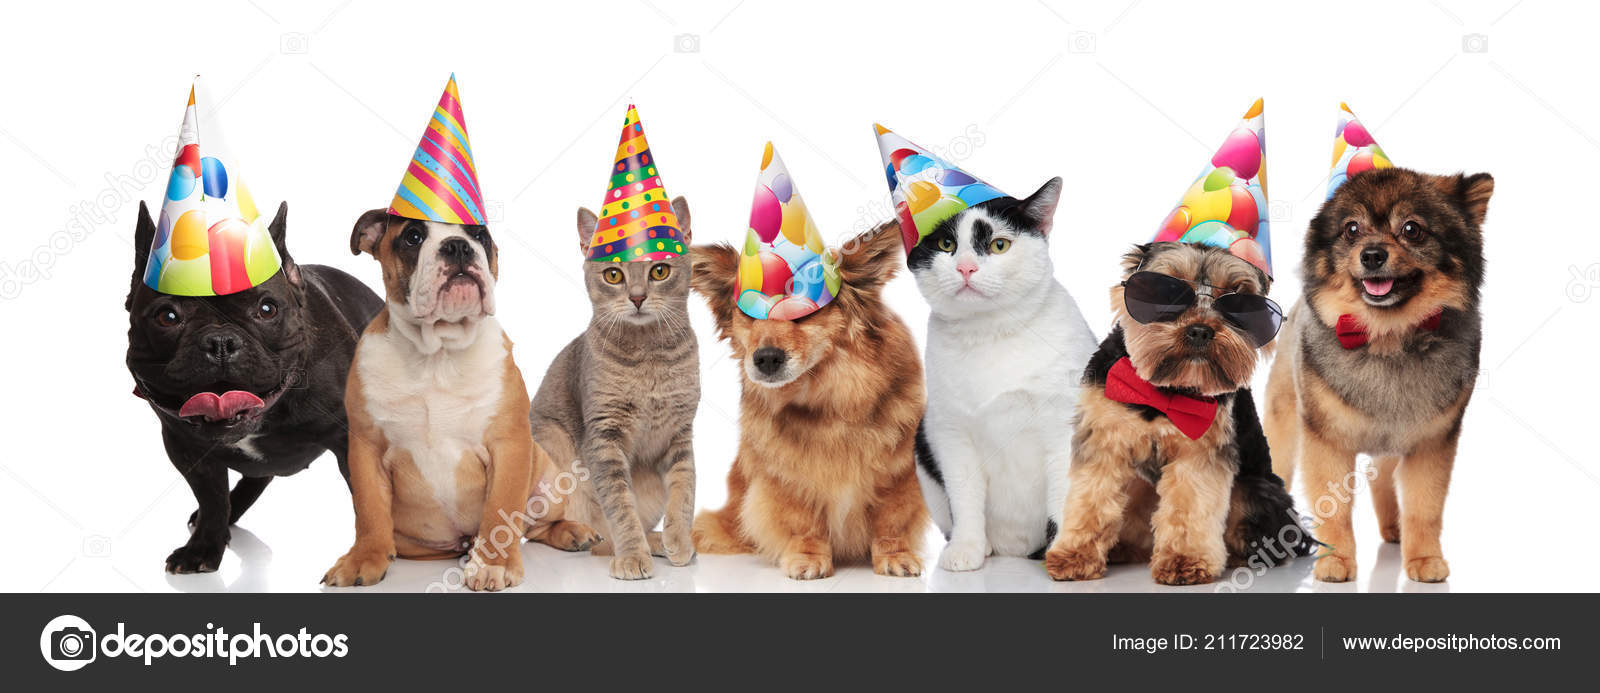 Team Seven Happy Cats Dogs Wearing Colorful Birthday Hats While Stock Photo